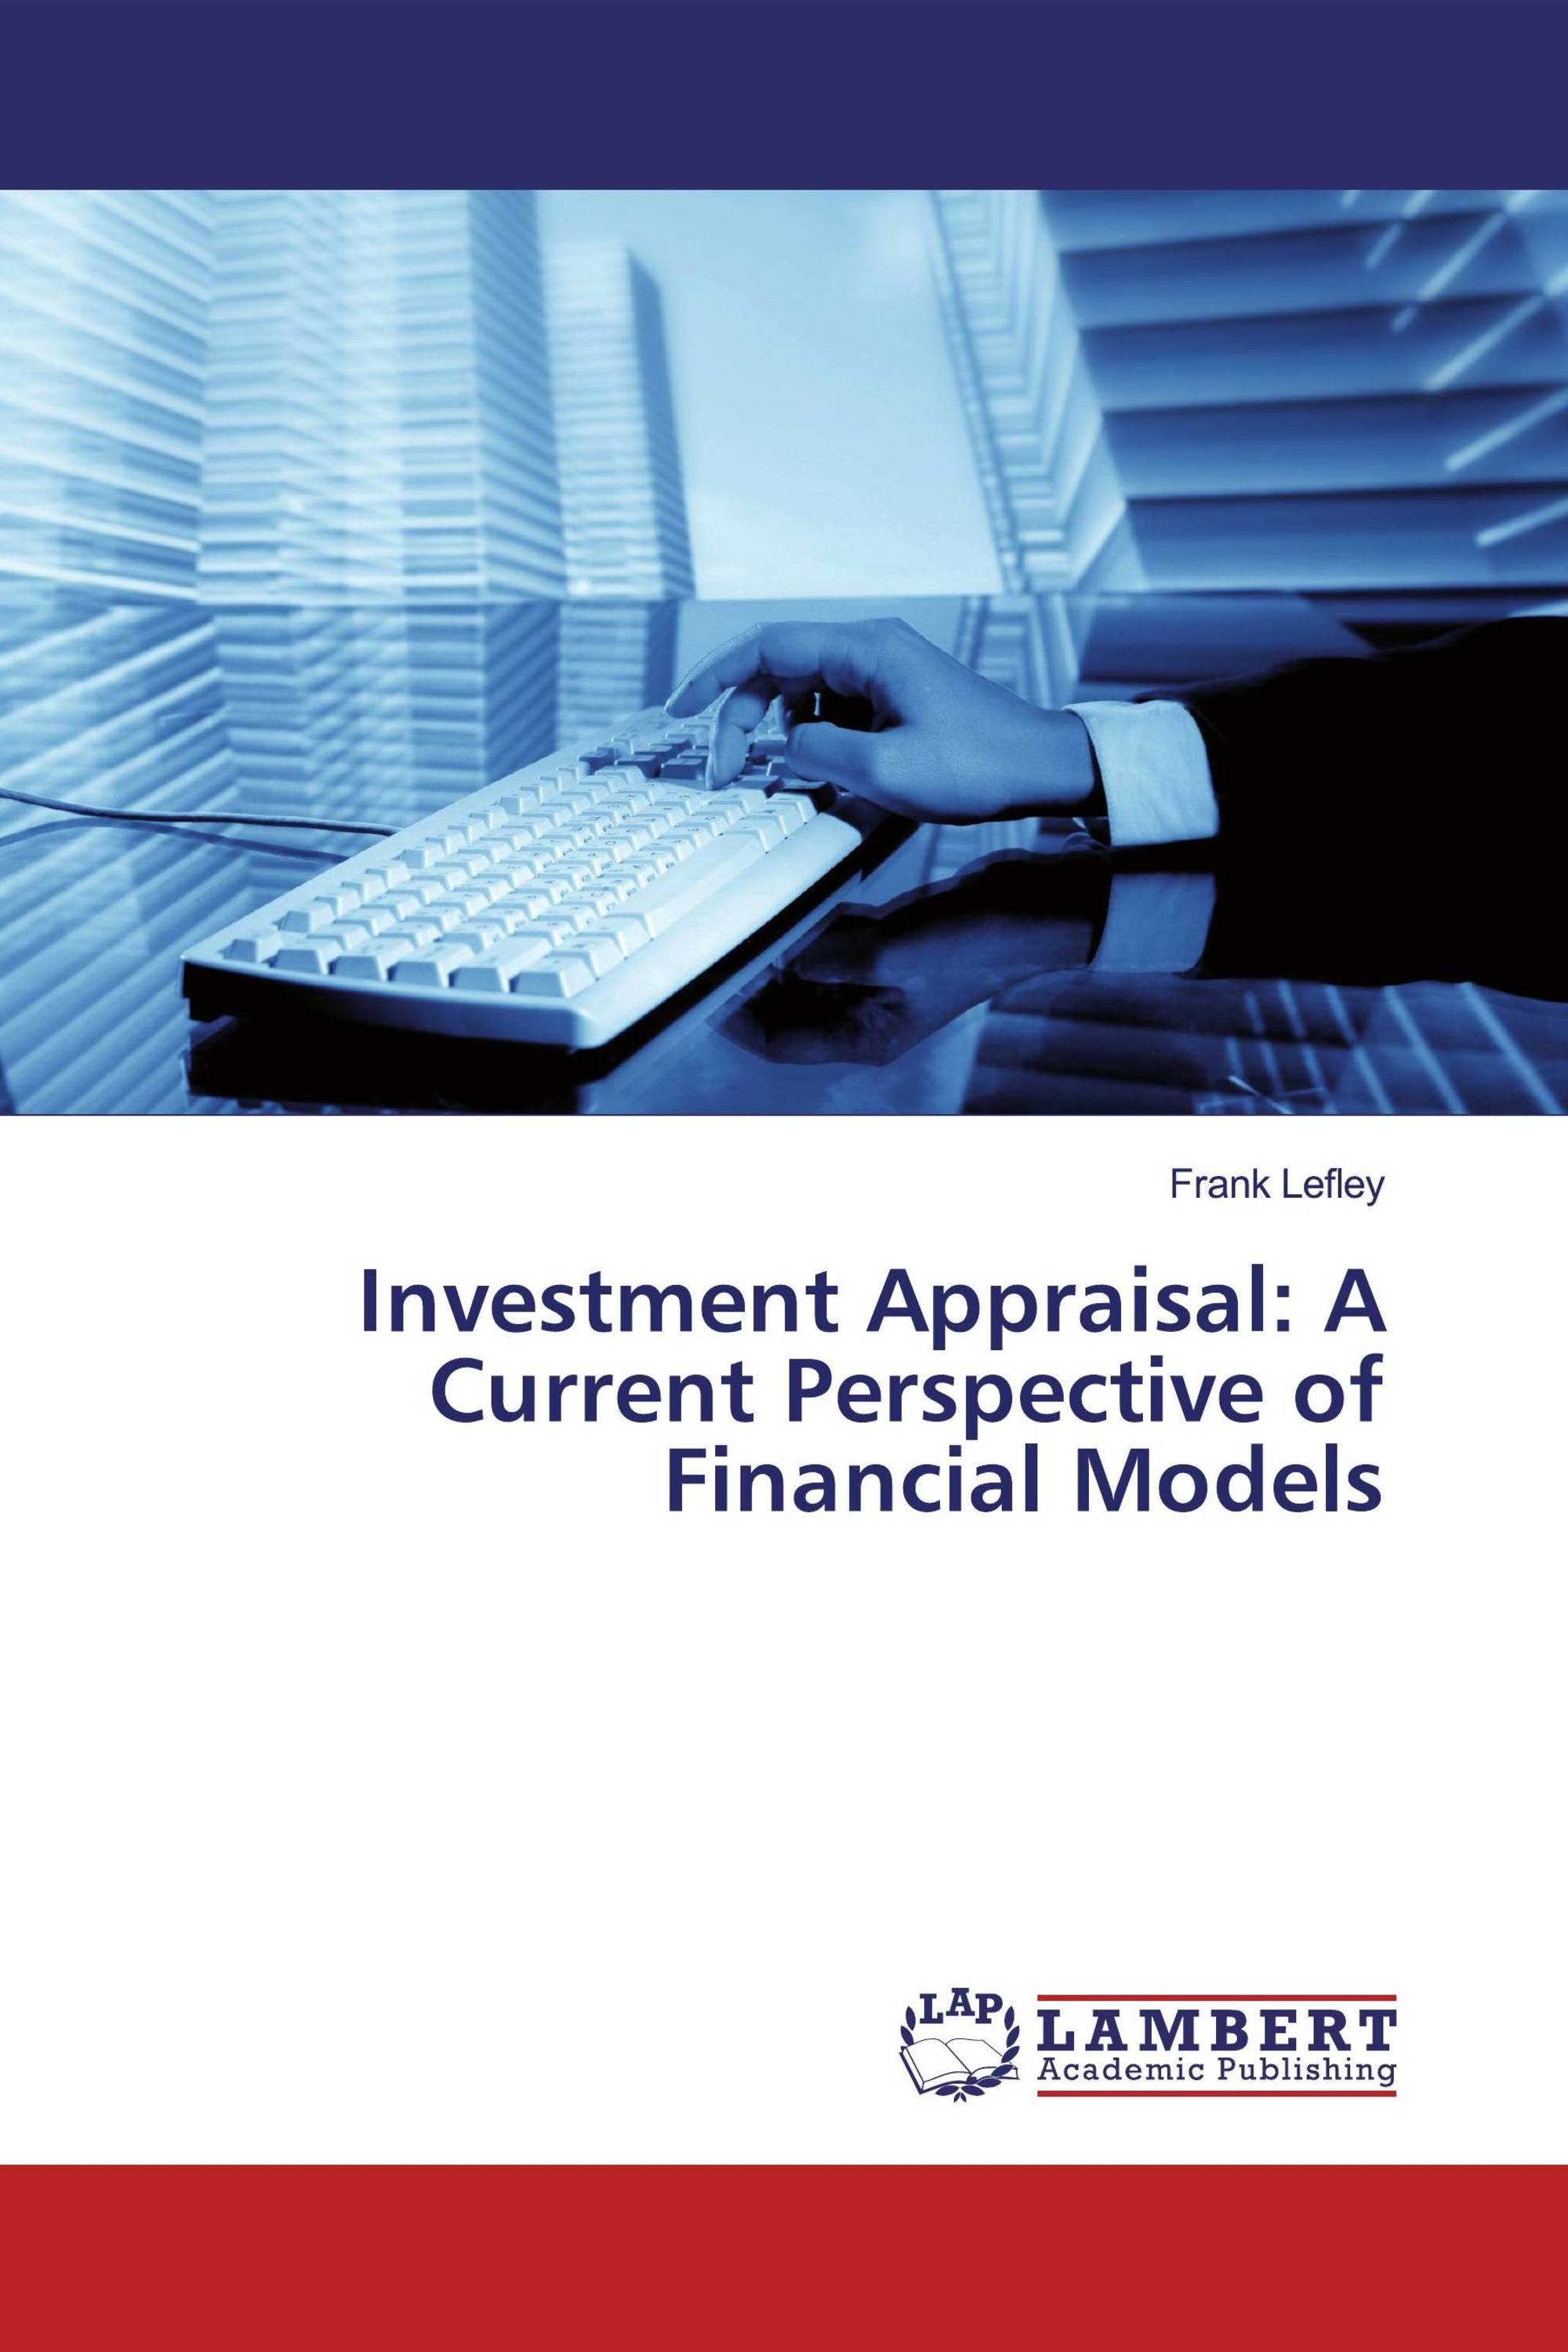 Investment Appraisal: A Current Perspective of Financial Models